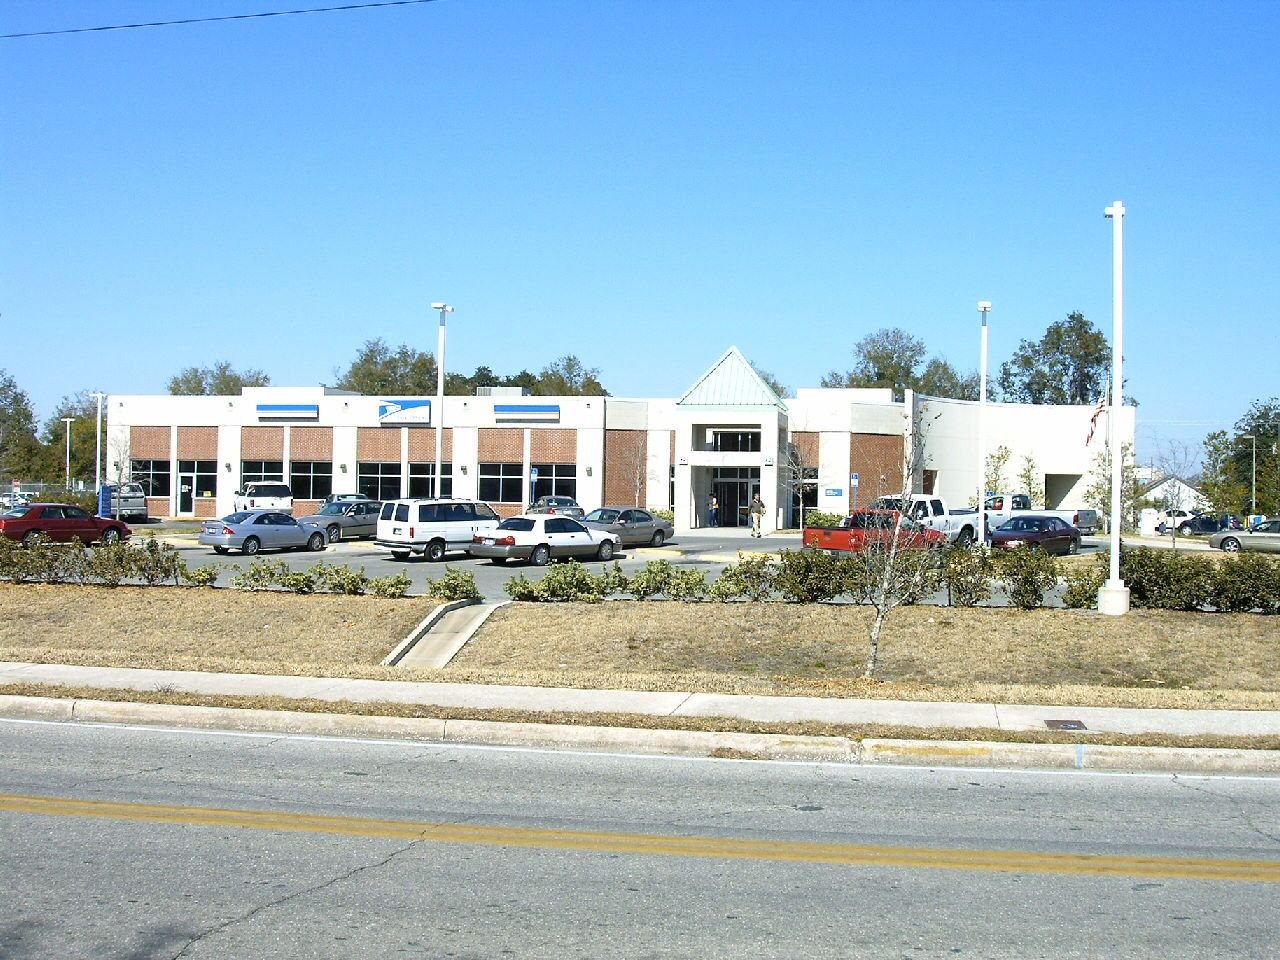 Lake City Fl Post Office, located on Main Blvd. When you